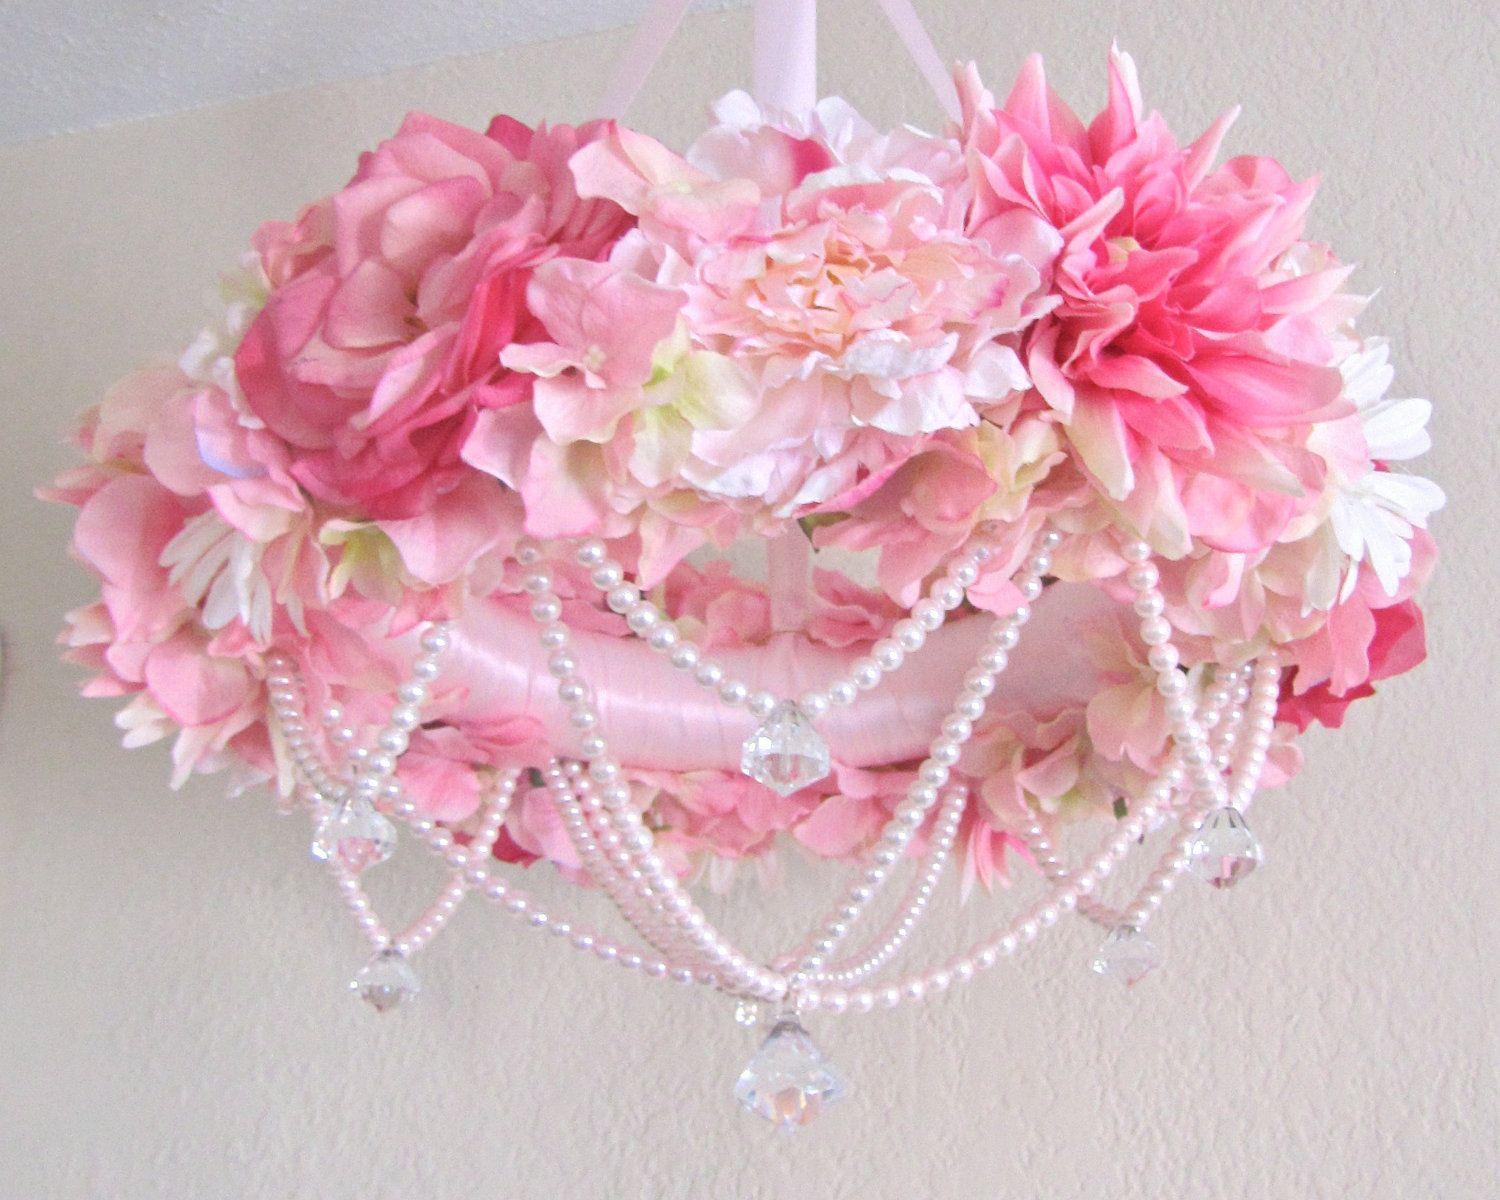 Baby mobile flower crib mobile floral chandelier shabby chic pink baby girl nursery decor pearls - Mobel shabby chic ...